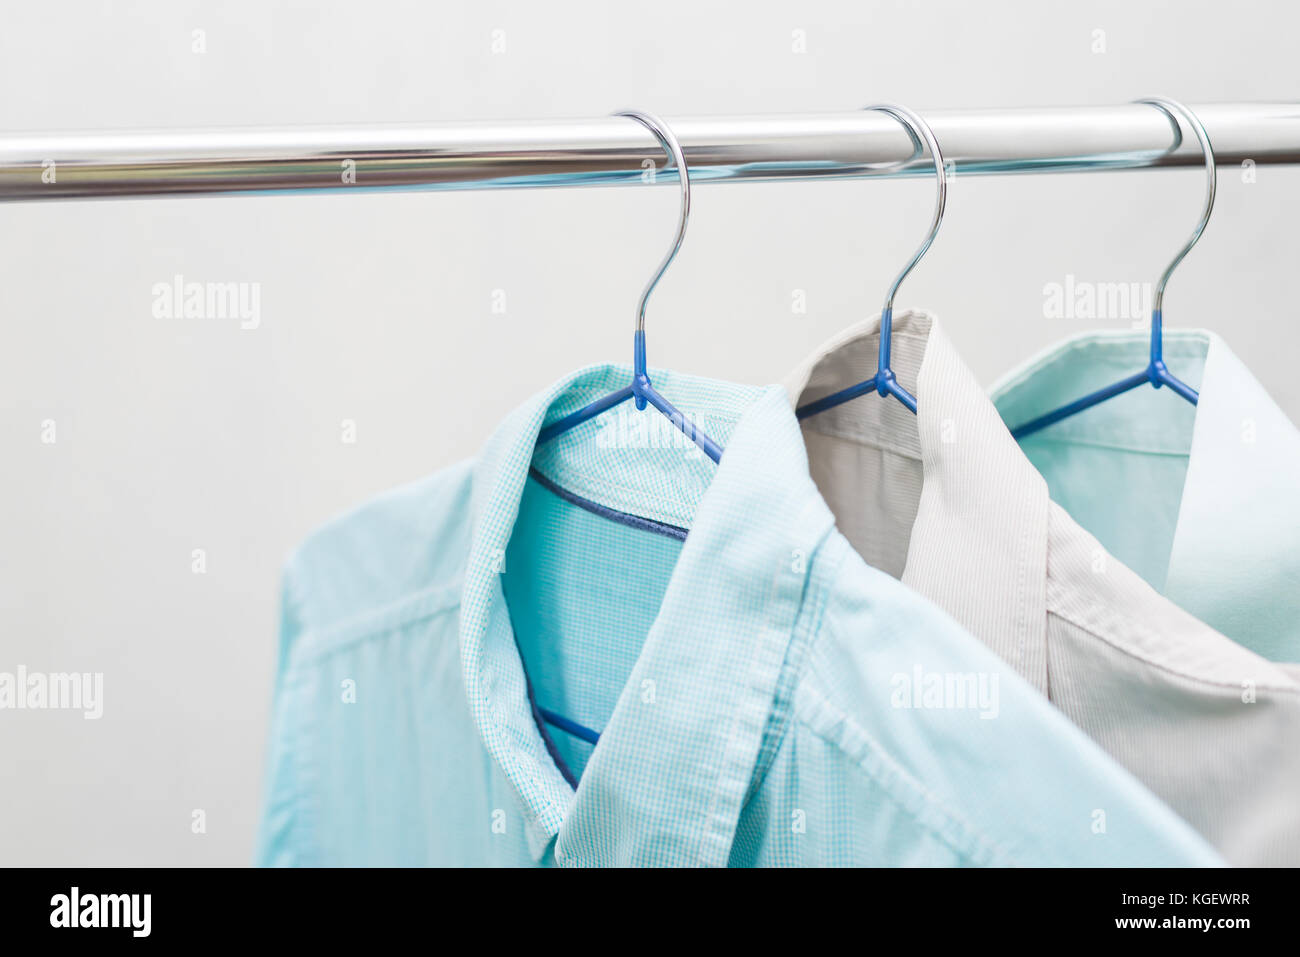 Blue Shirts On Hangers Hanging On A Pipe Stock Photo 165055403 Alamy